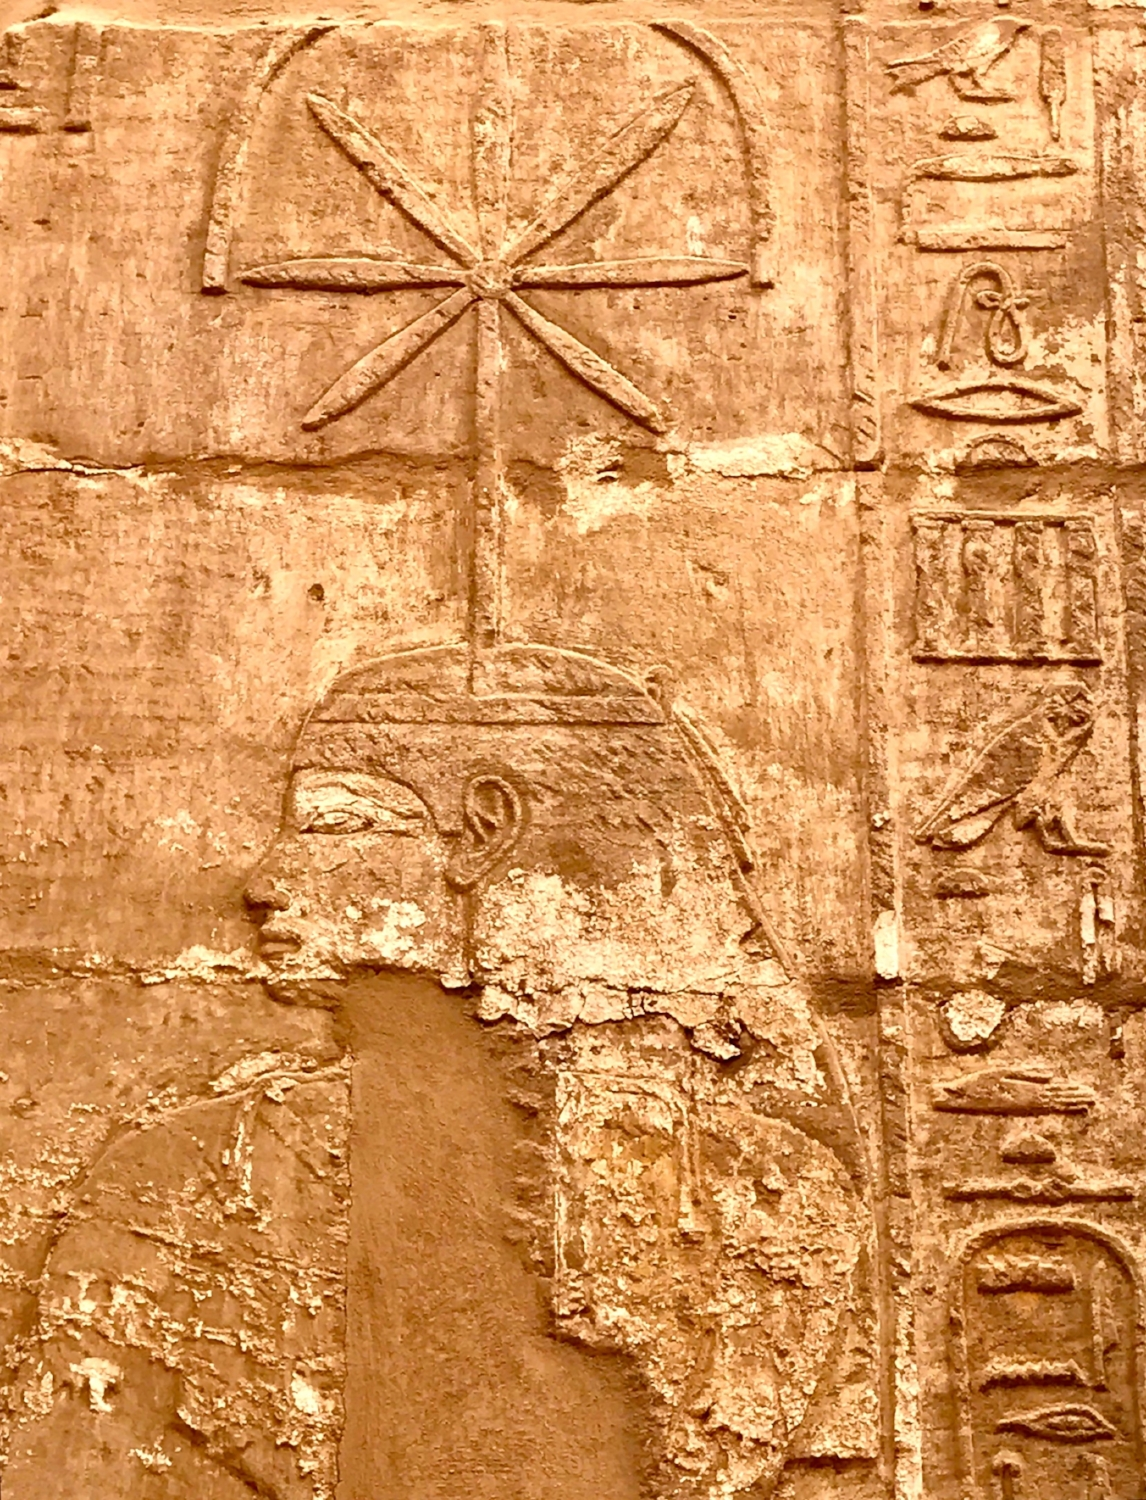 Seshat goddess of wisdom and writing